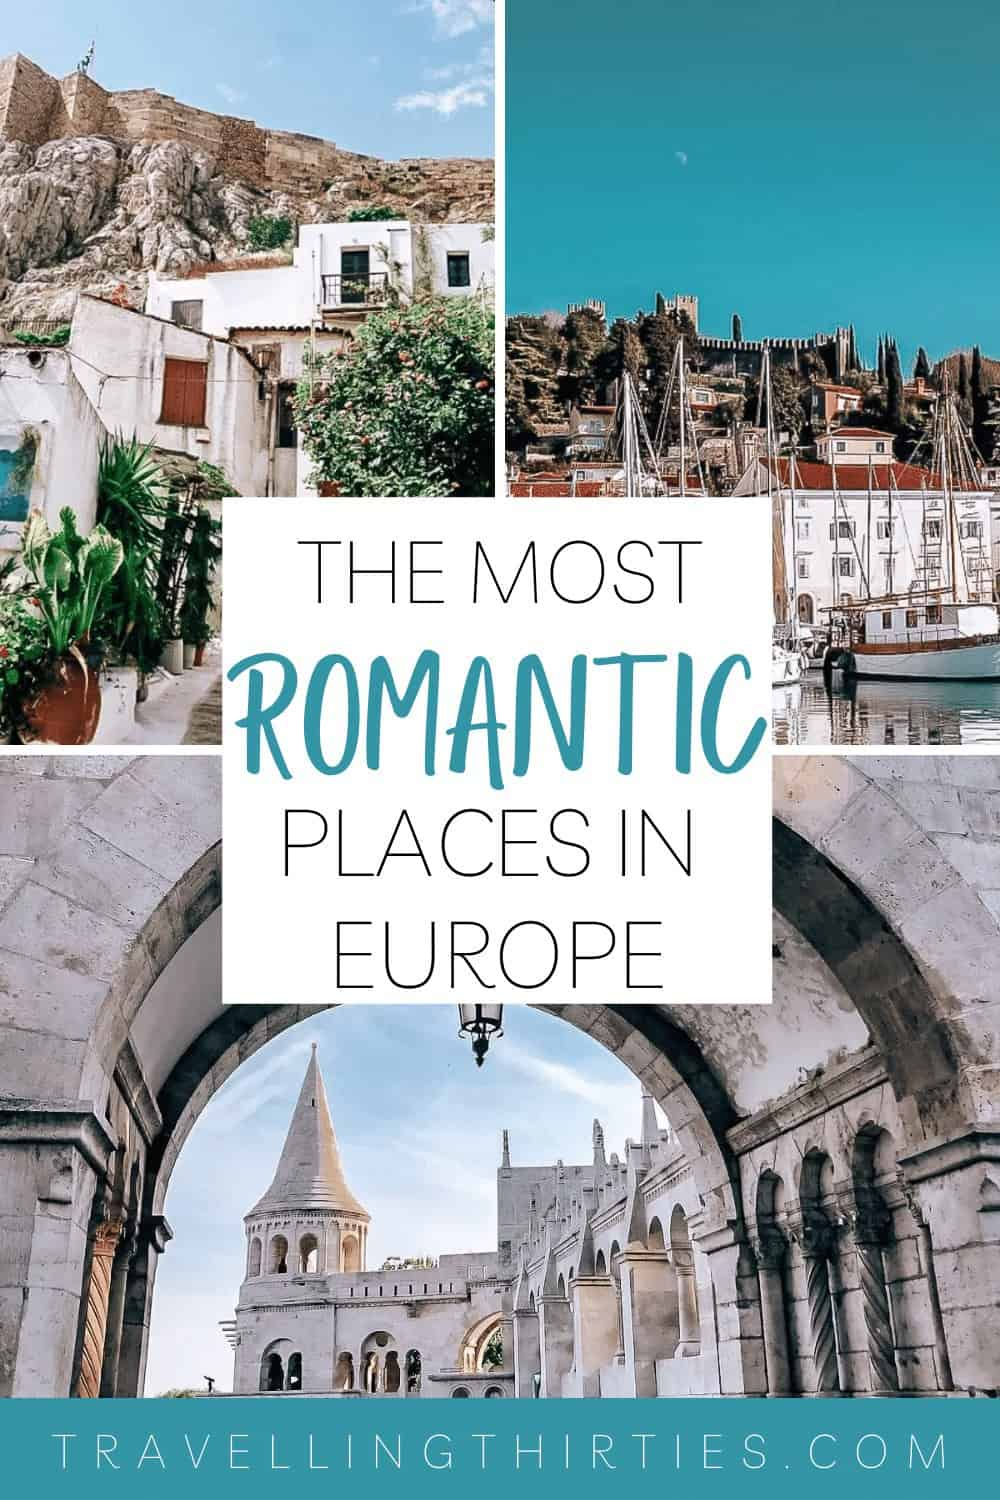 Pinterest Graphic for the most romantic places in Europe